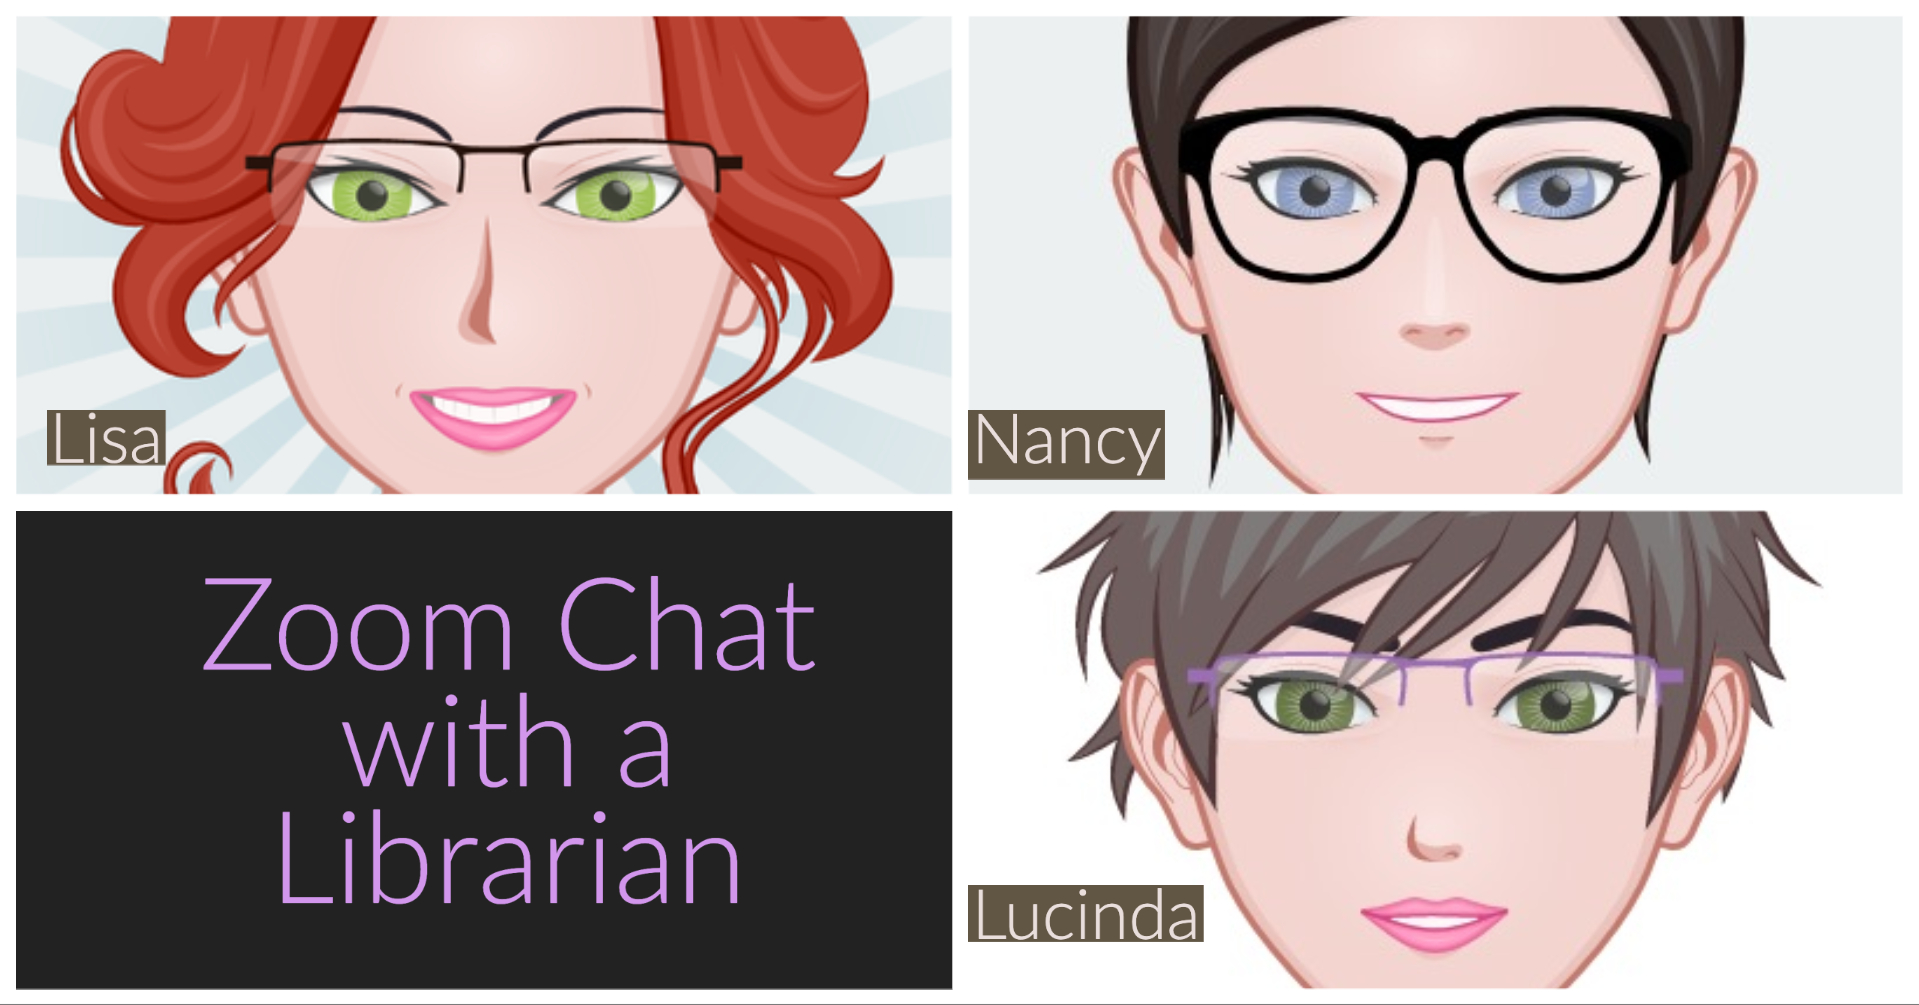 Zoom Chat with a Librarian